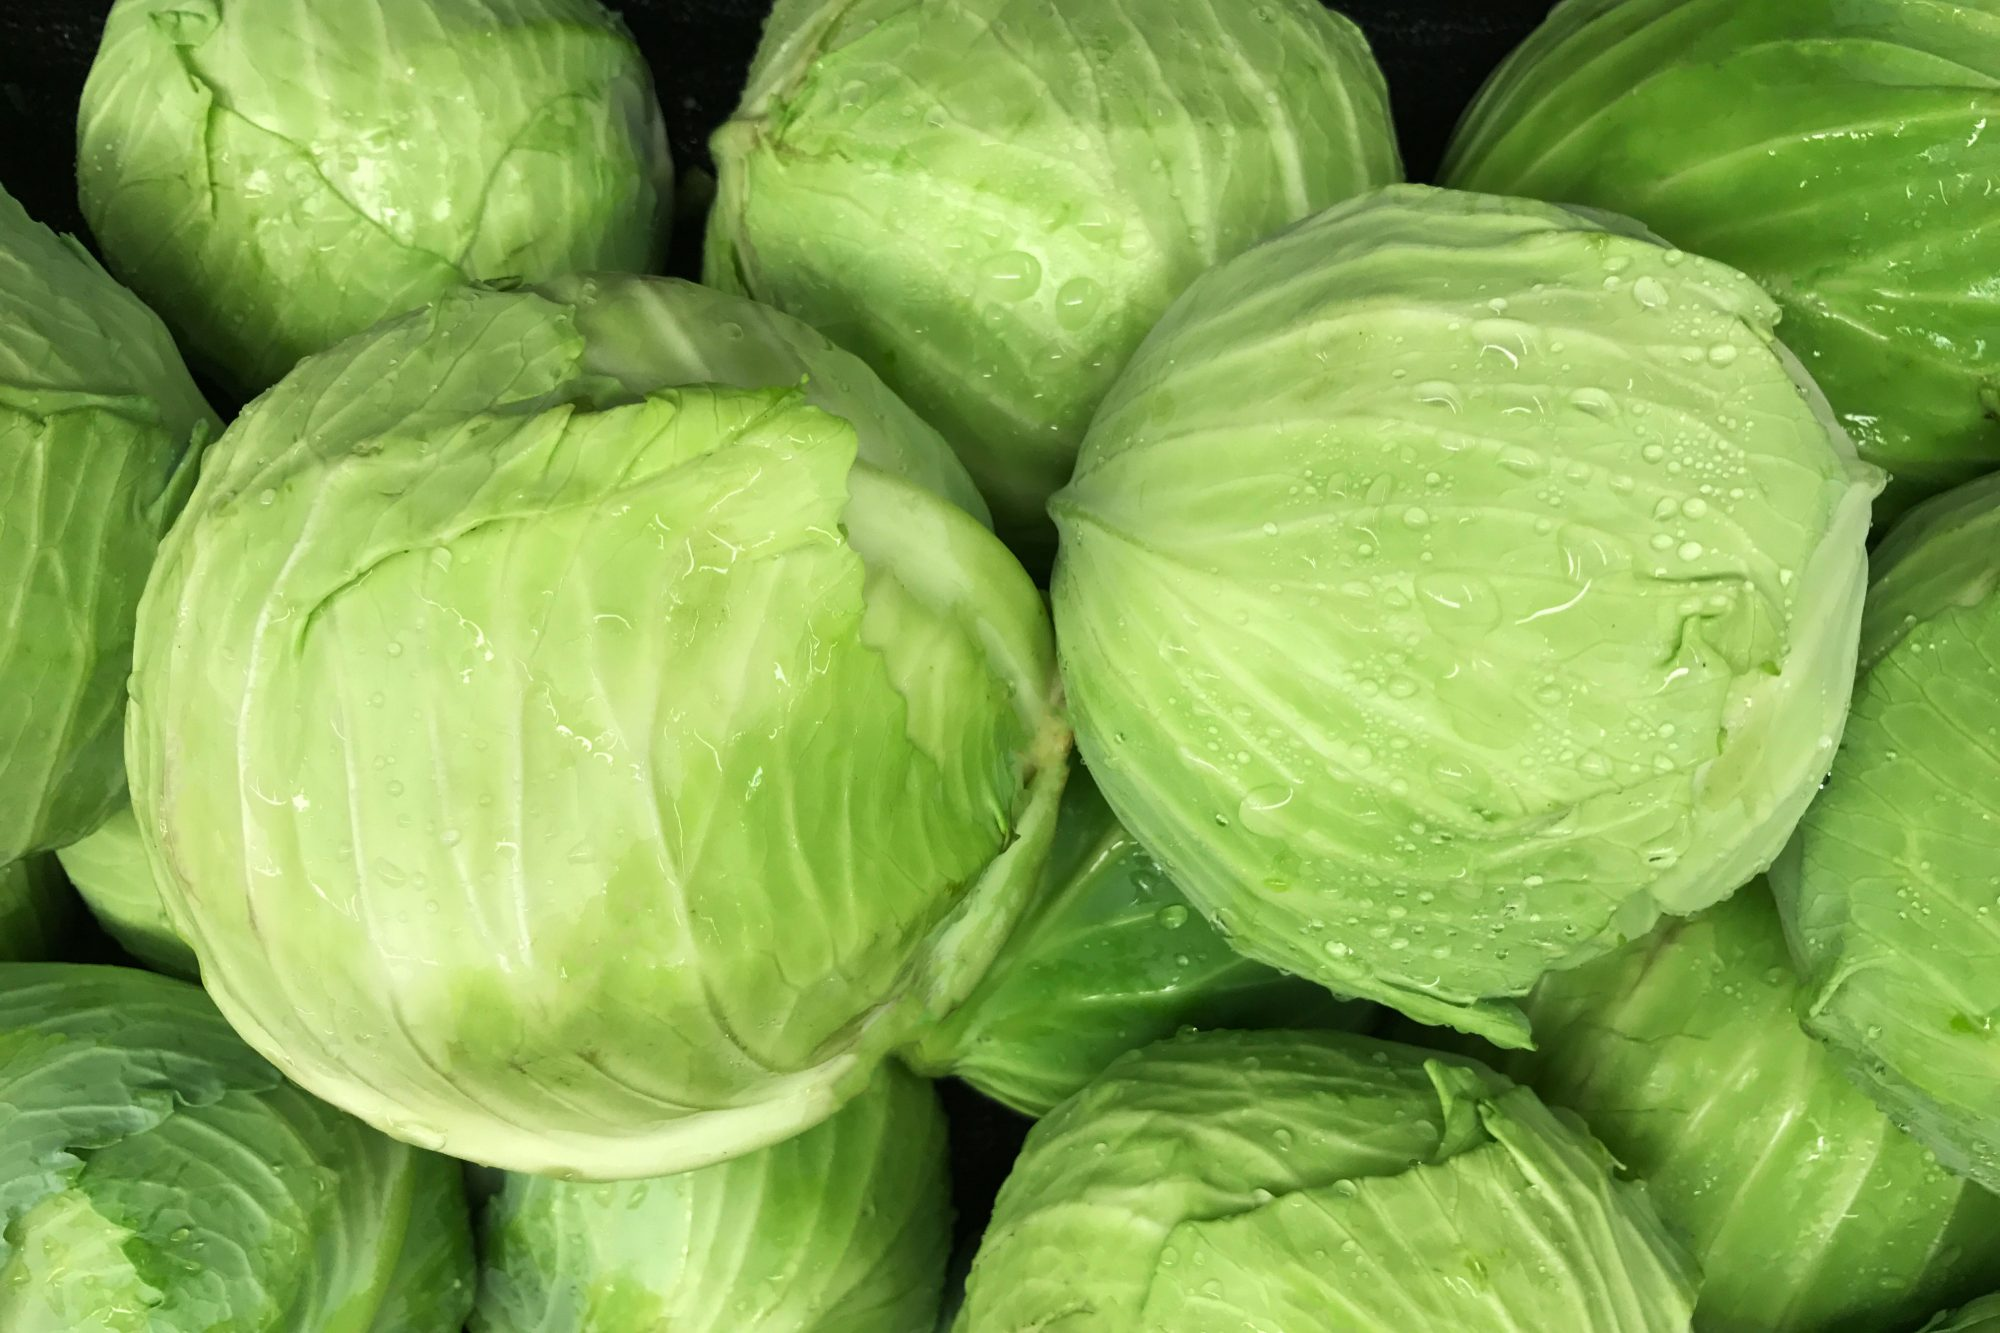 Whole heads of cabbage in a pile